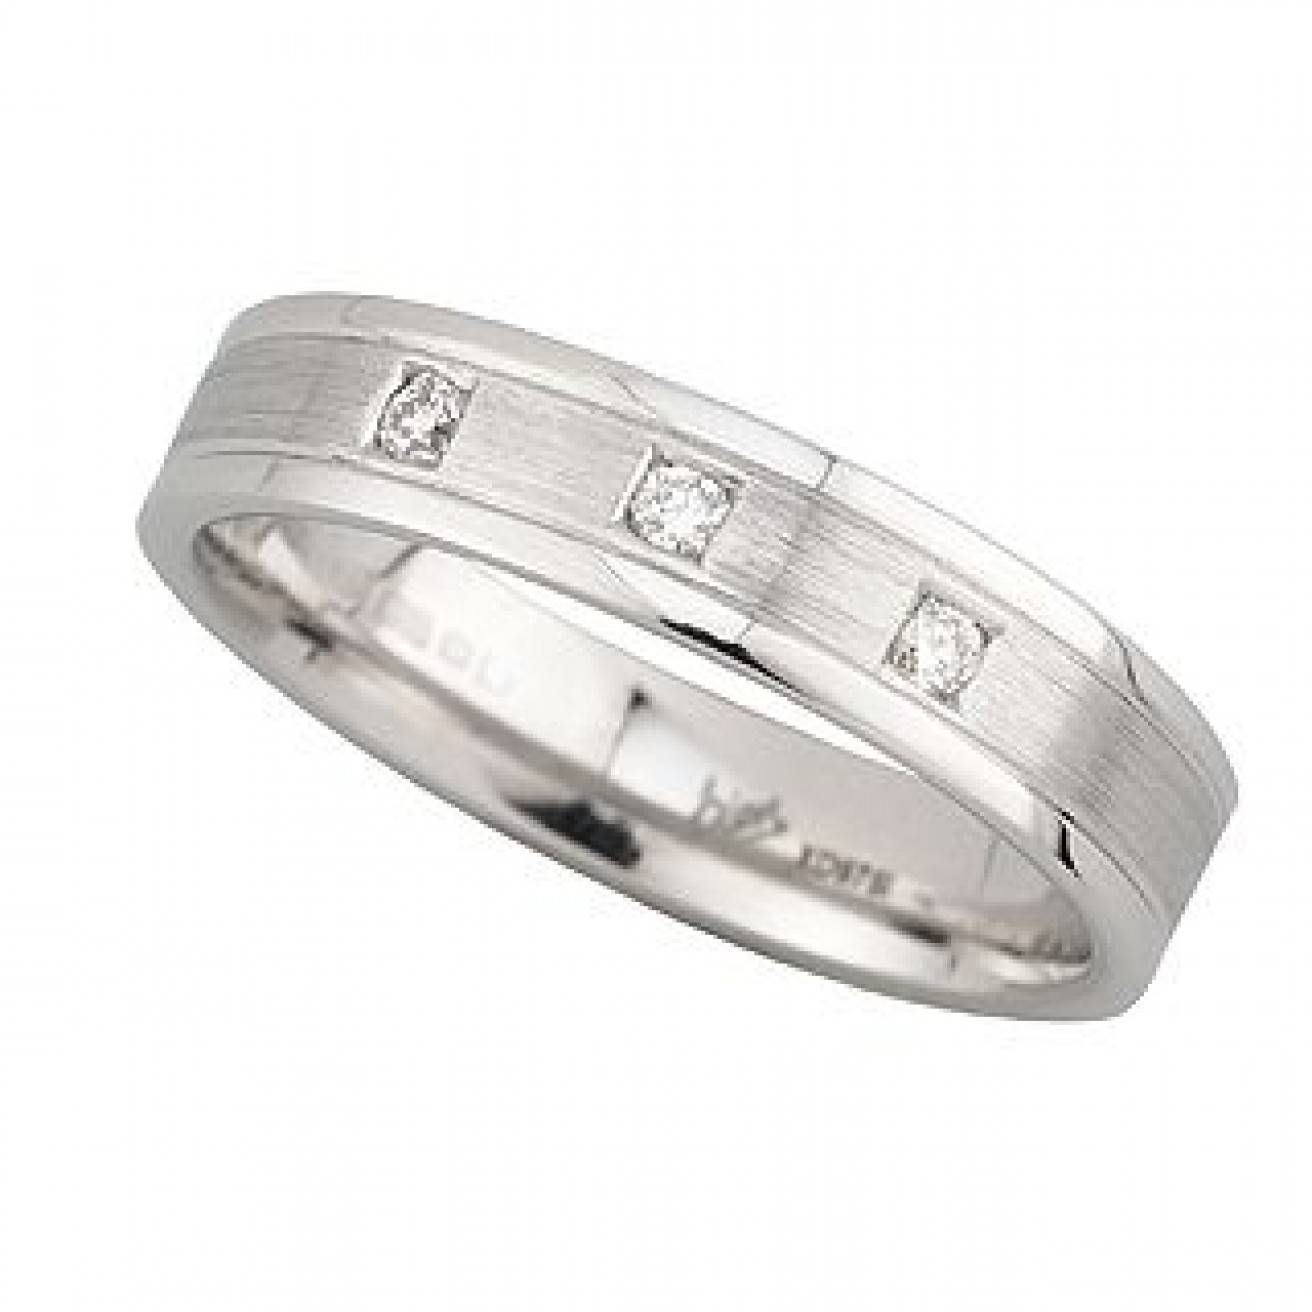 Wedding Rings : Palladium Wedding Bands For Her Palladium Vs Intended For Most Current Palladium Wedding Bands For Women (View 13 of 15)